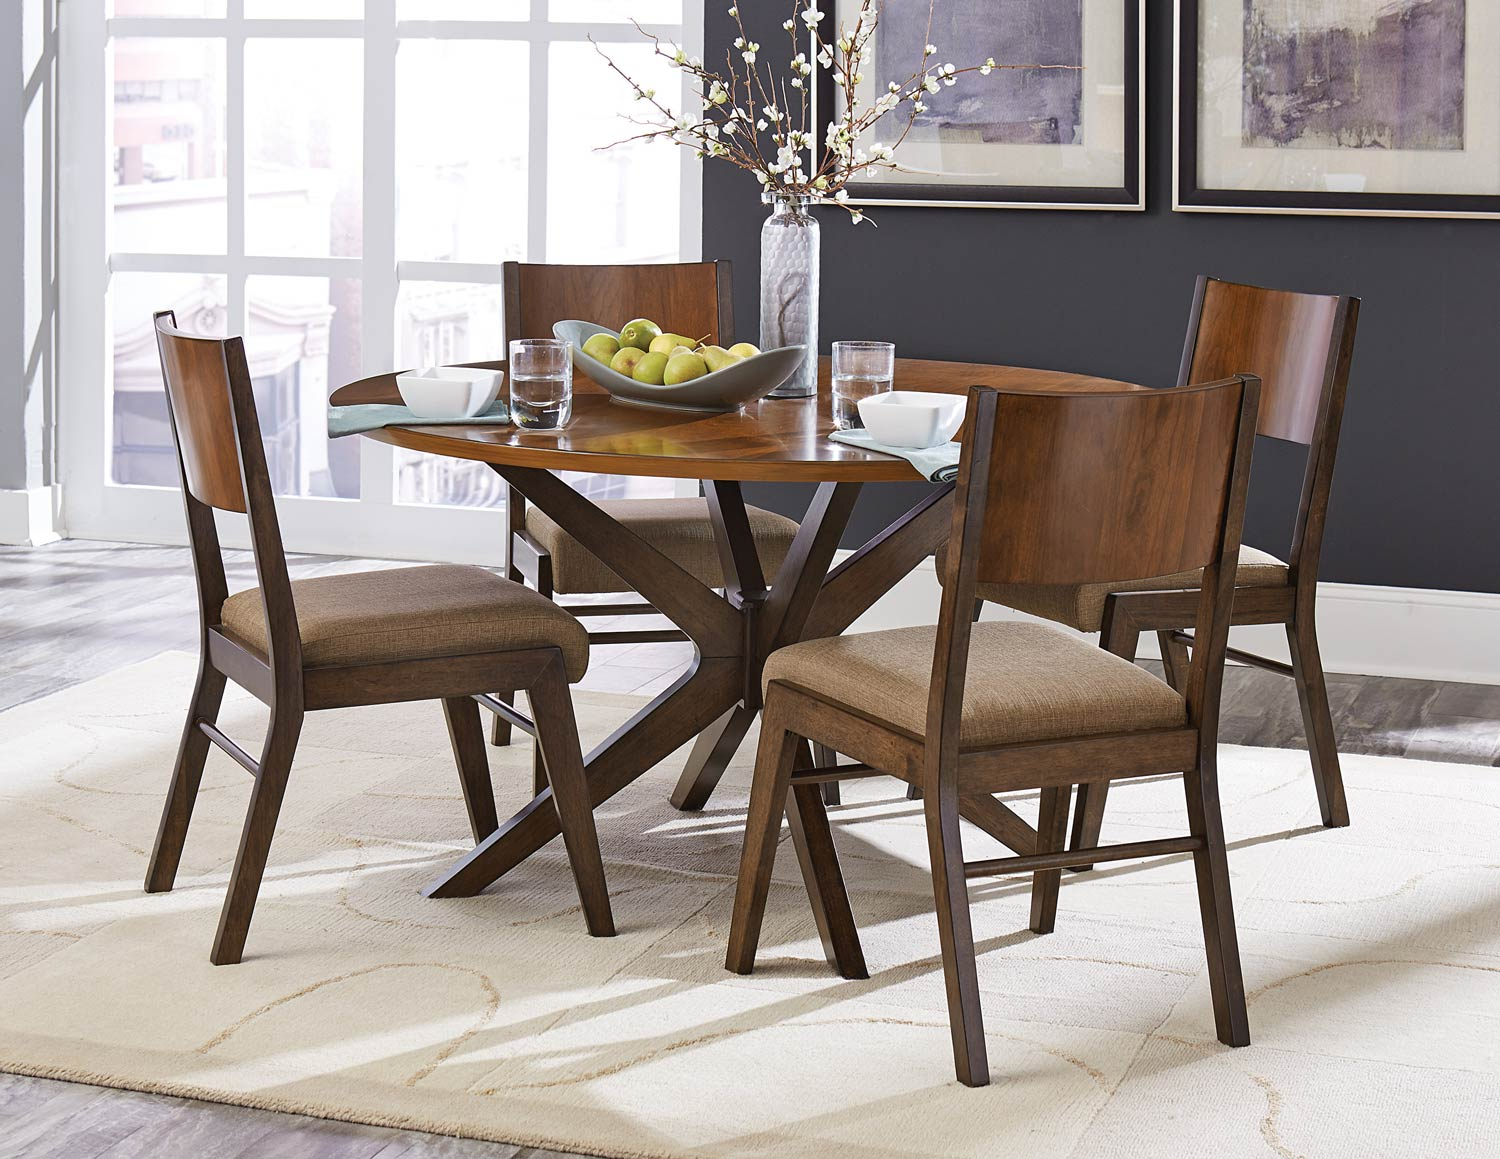 Homelegance Bhaer Round Dining Set - Two-tone